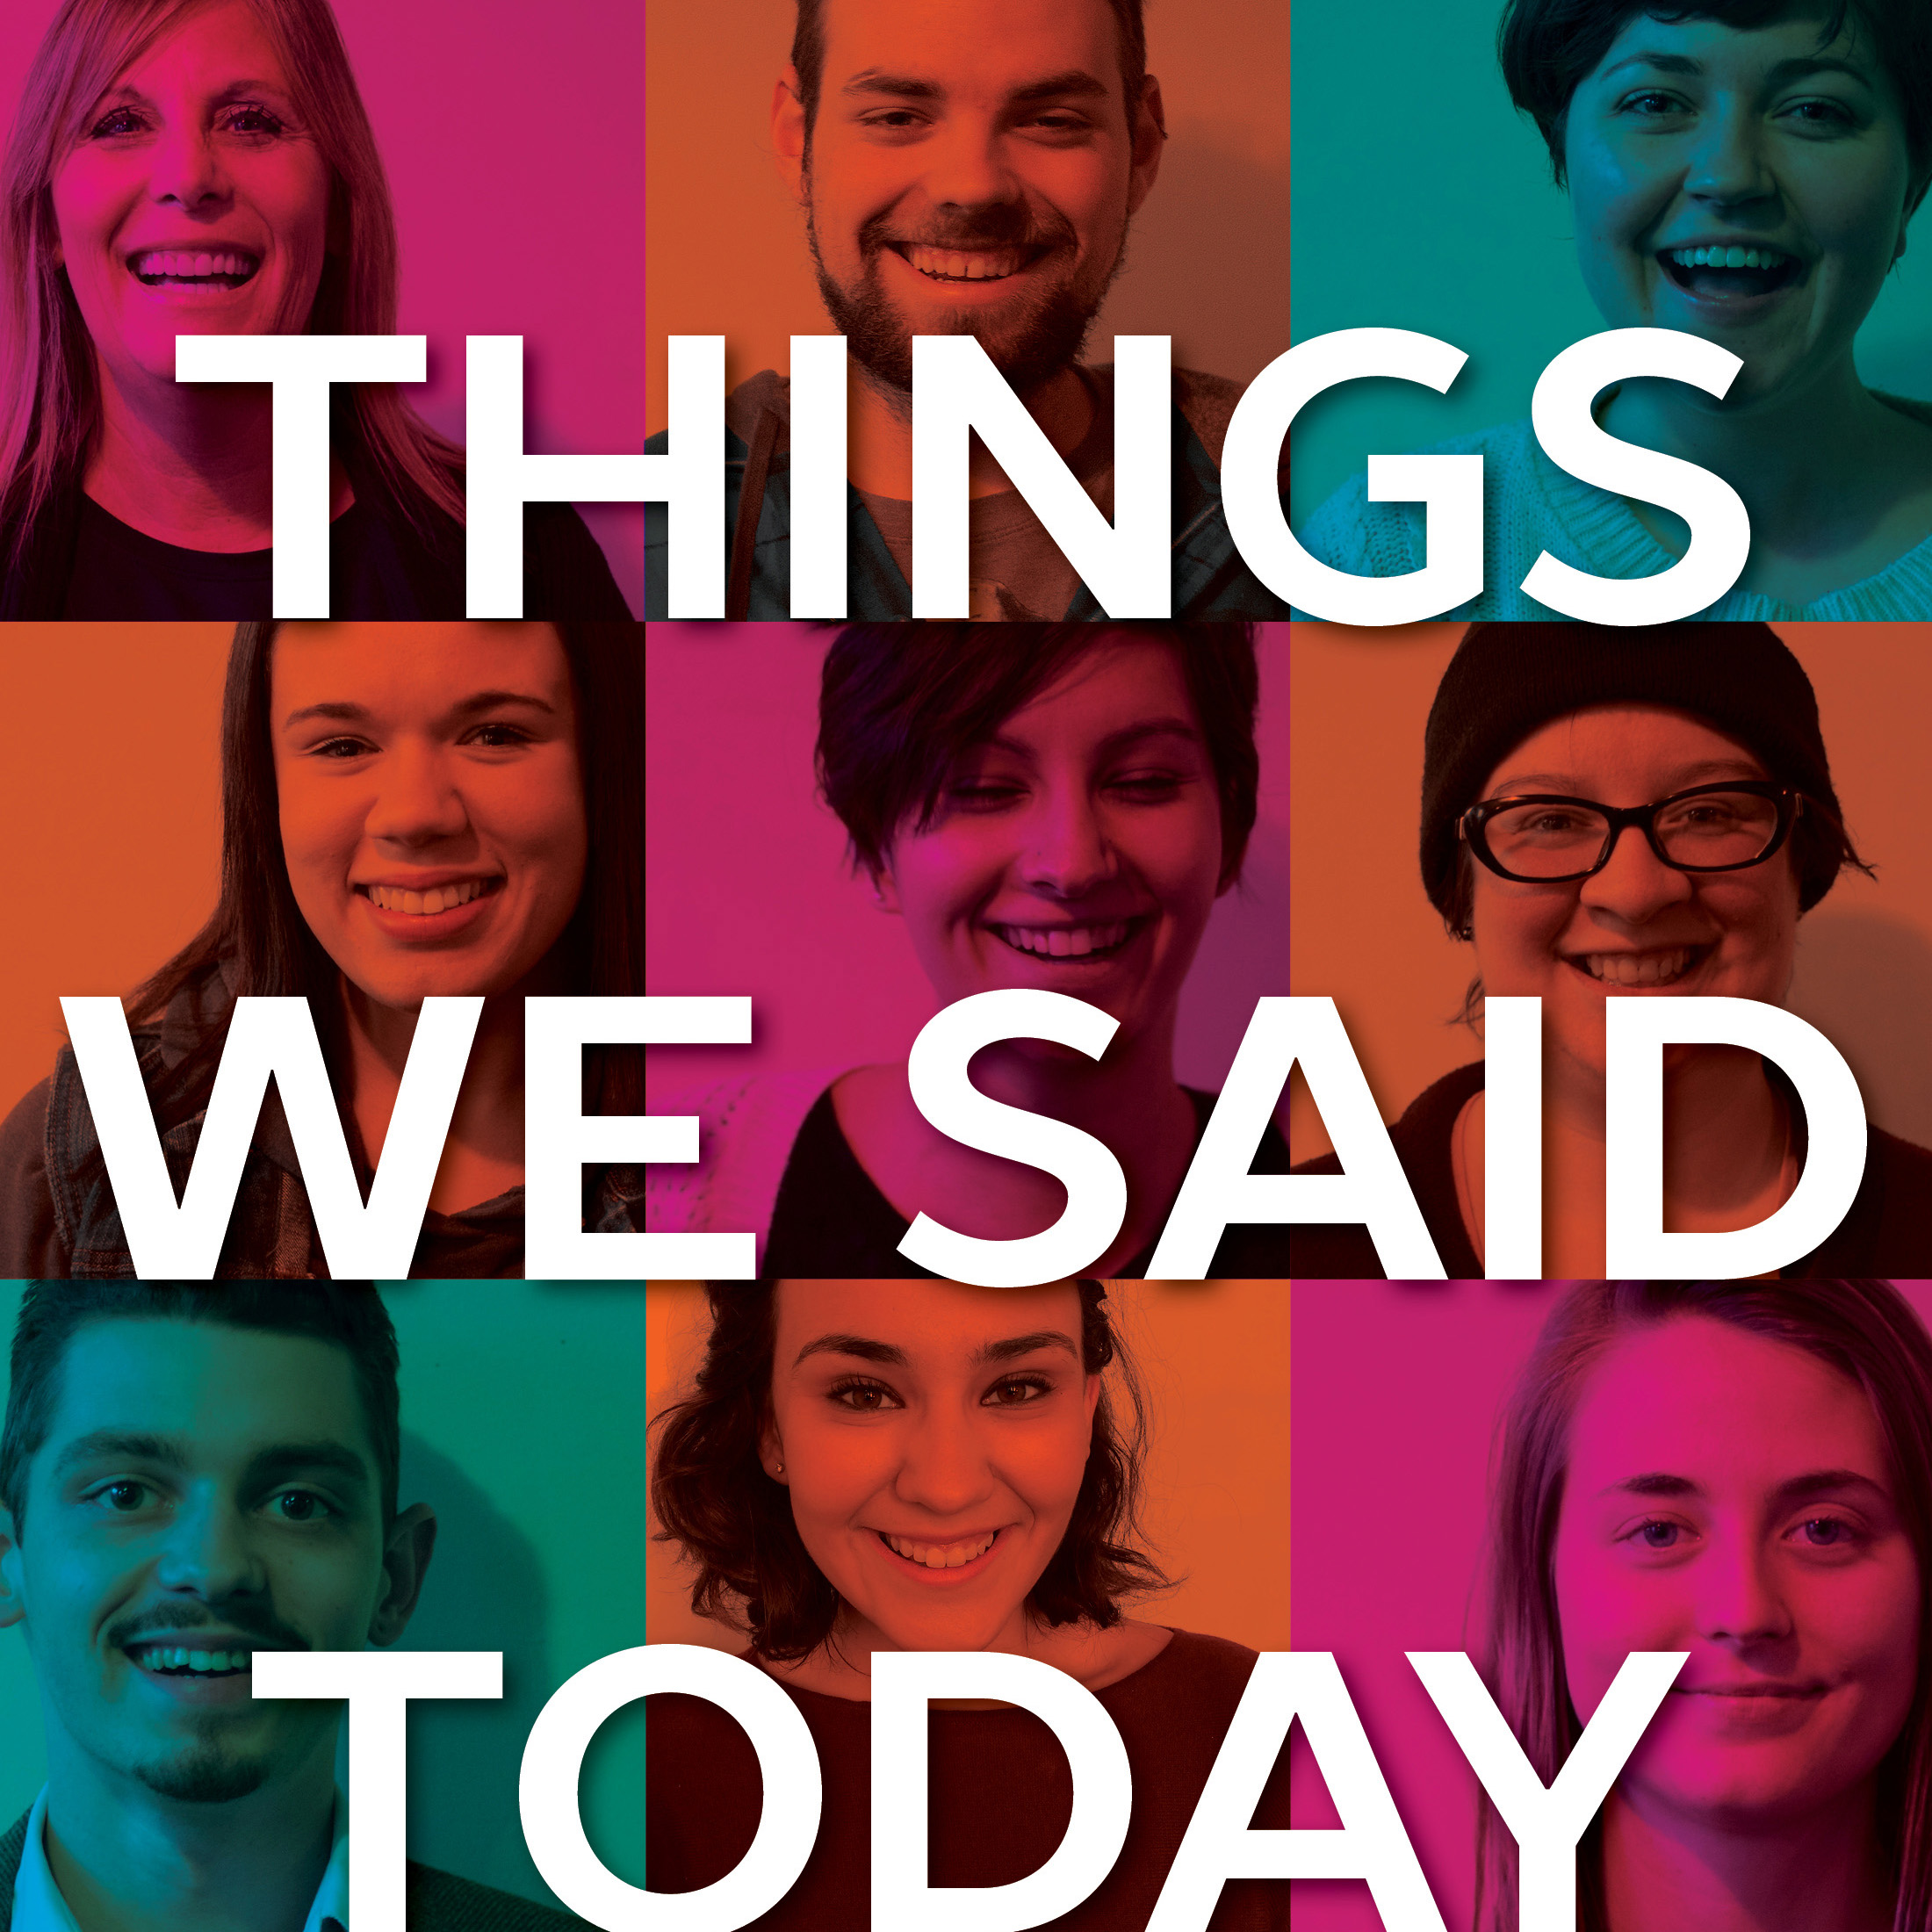 things-we-said-poster